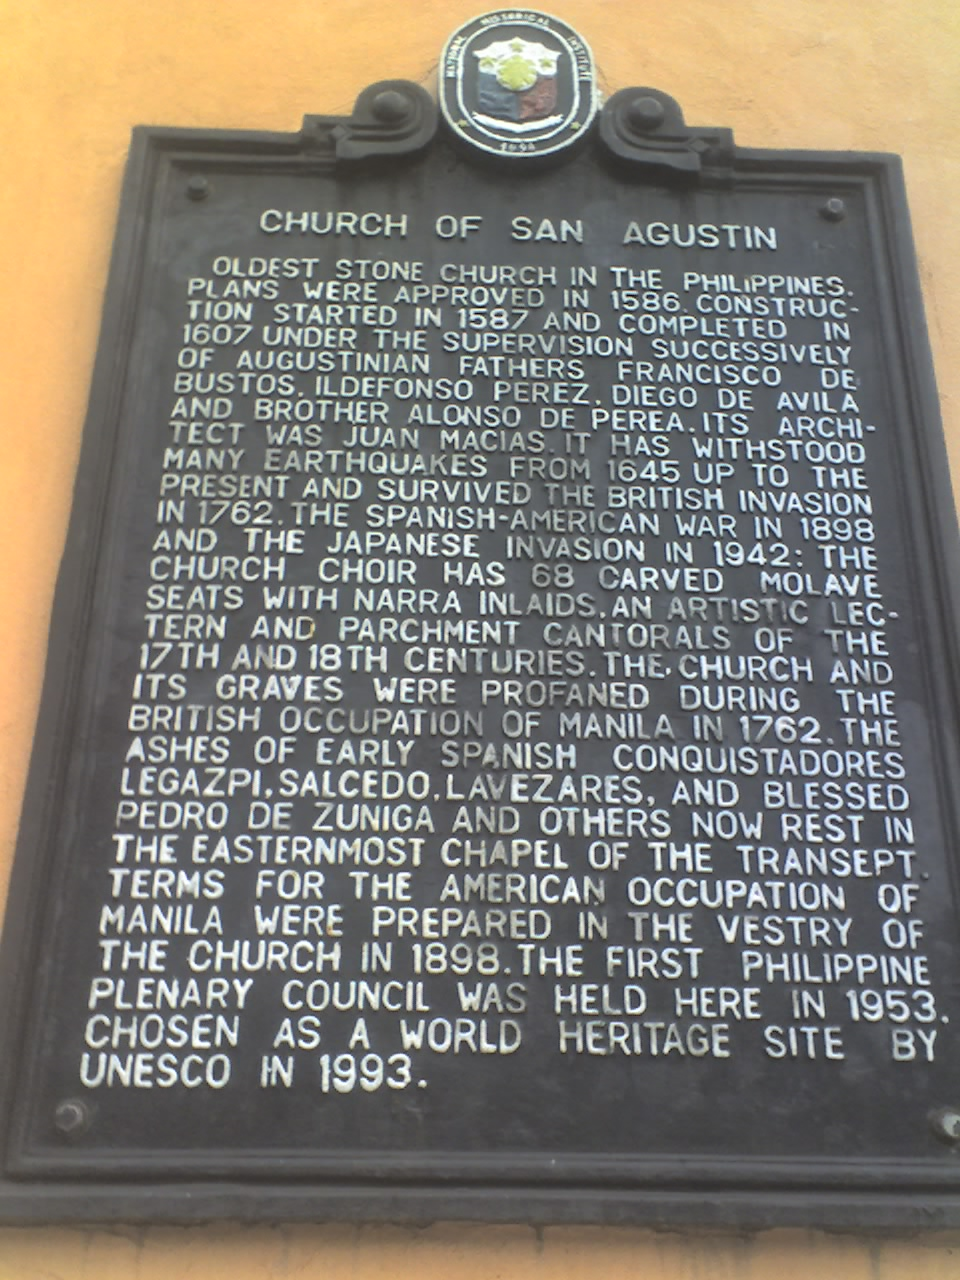 CHURCH OF SAN AGUSTÍN